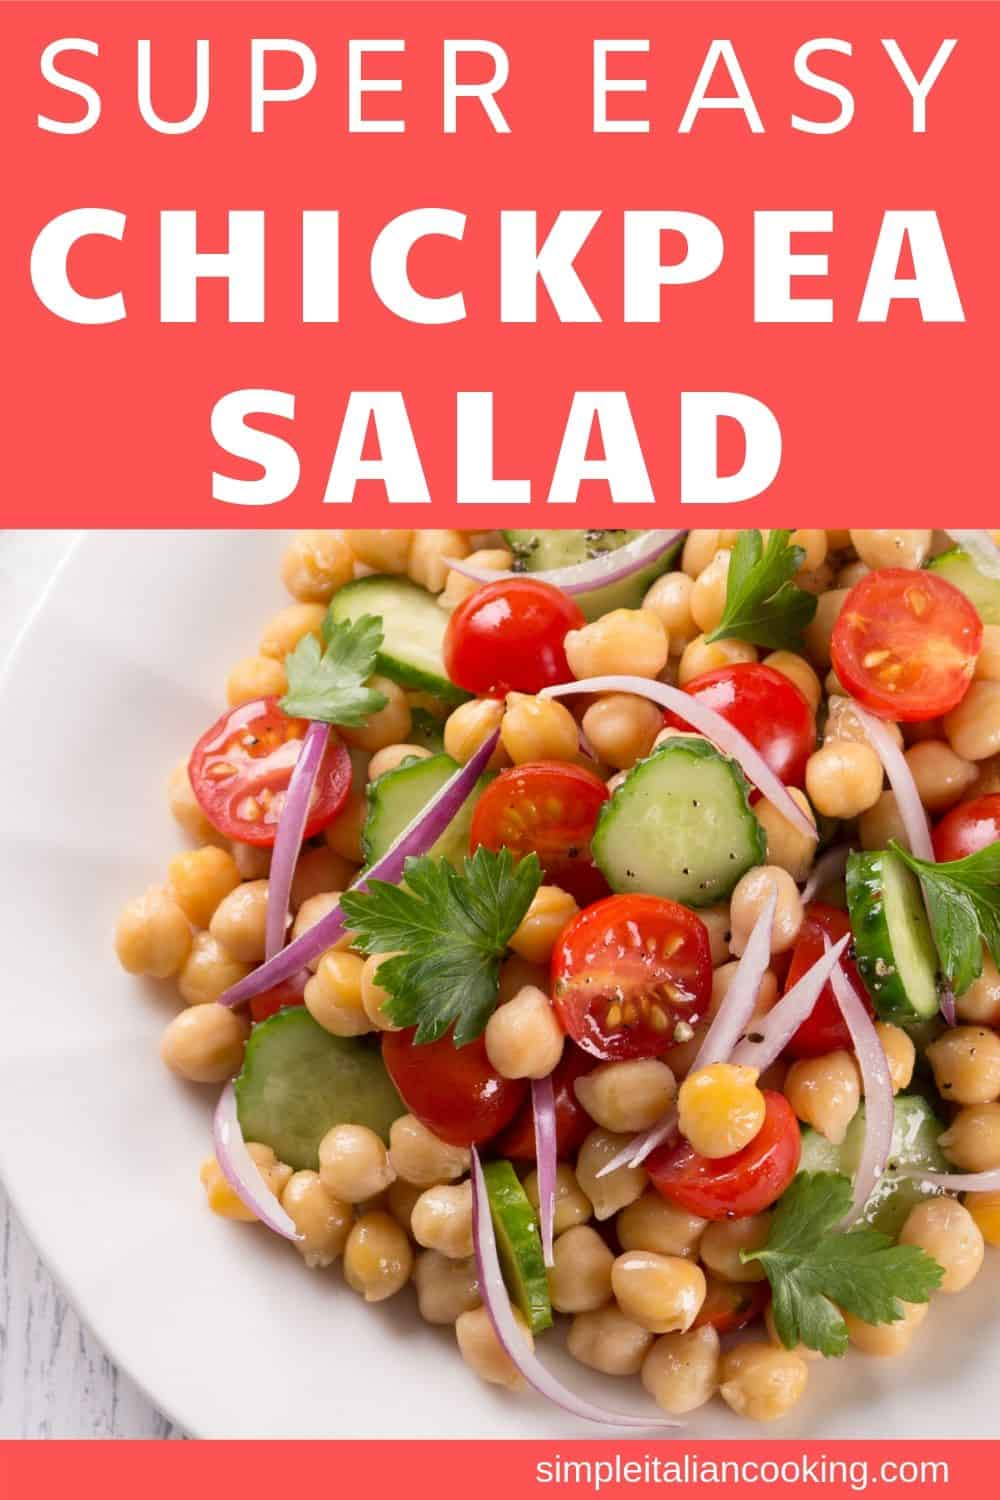 How to Make an Easy Italian Chickpea Salad